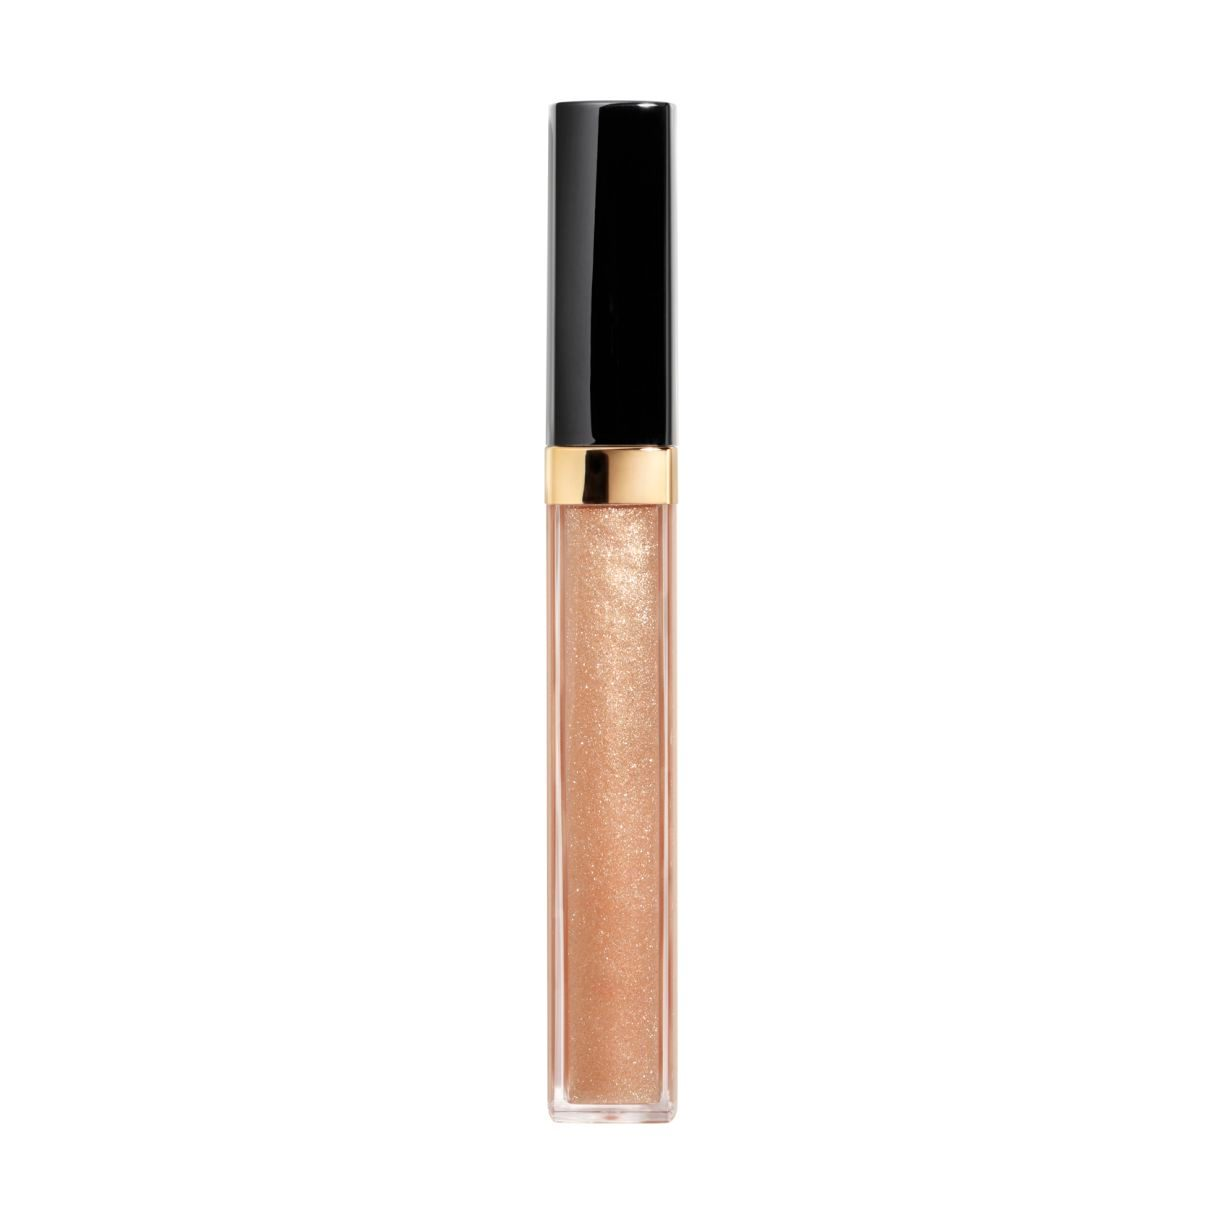 ROUGE COCO GLOSS FEUCHTIGKEITSSPENDENDER LIPGLOSS